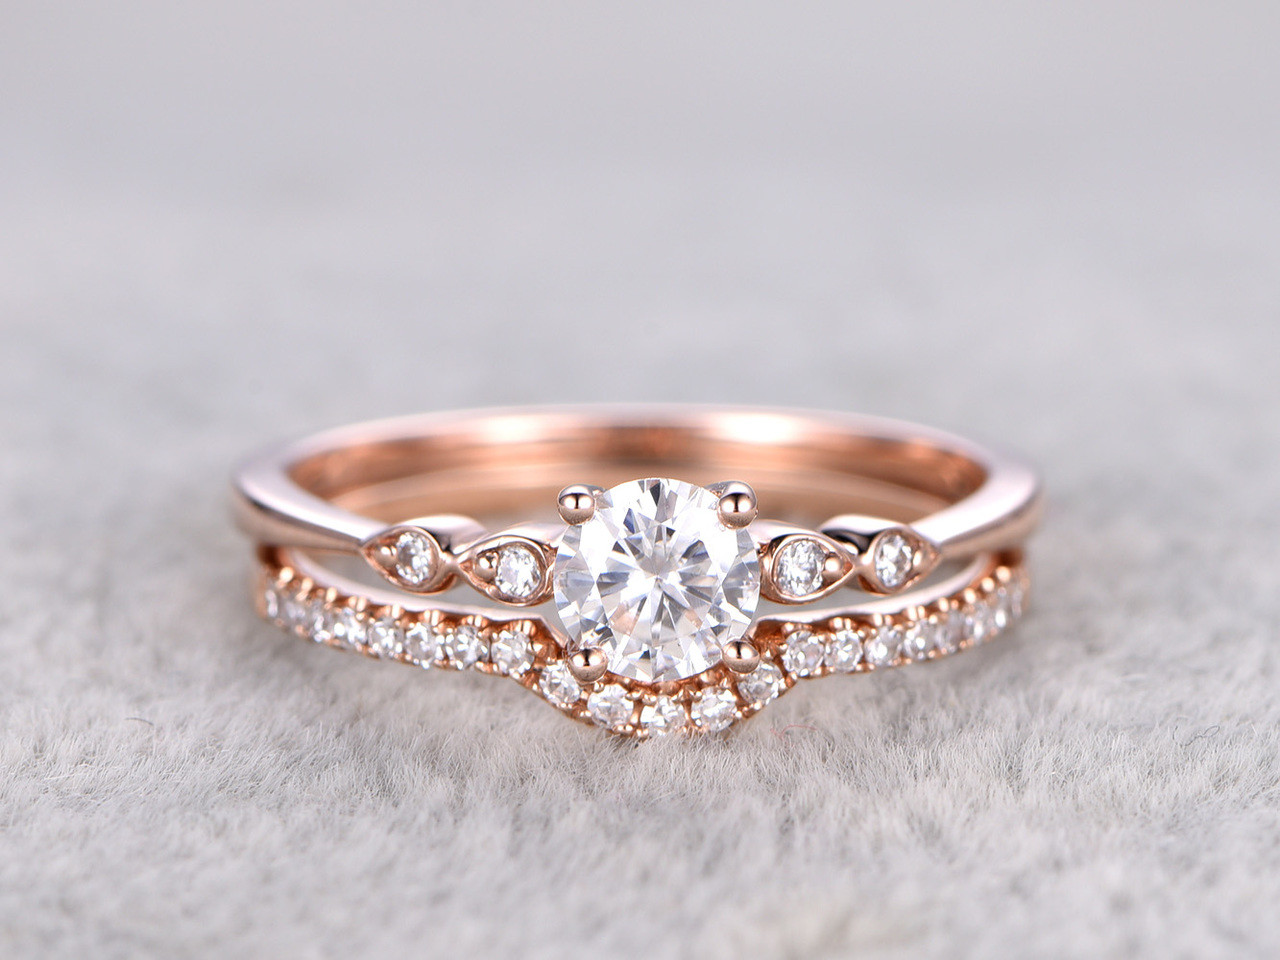 jewelry bands band wedding for with diamonds thin in women round gold nl fascinating rg rose white micropave diamond